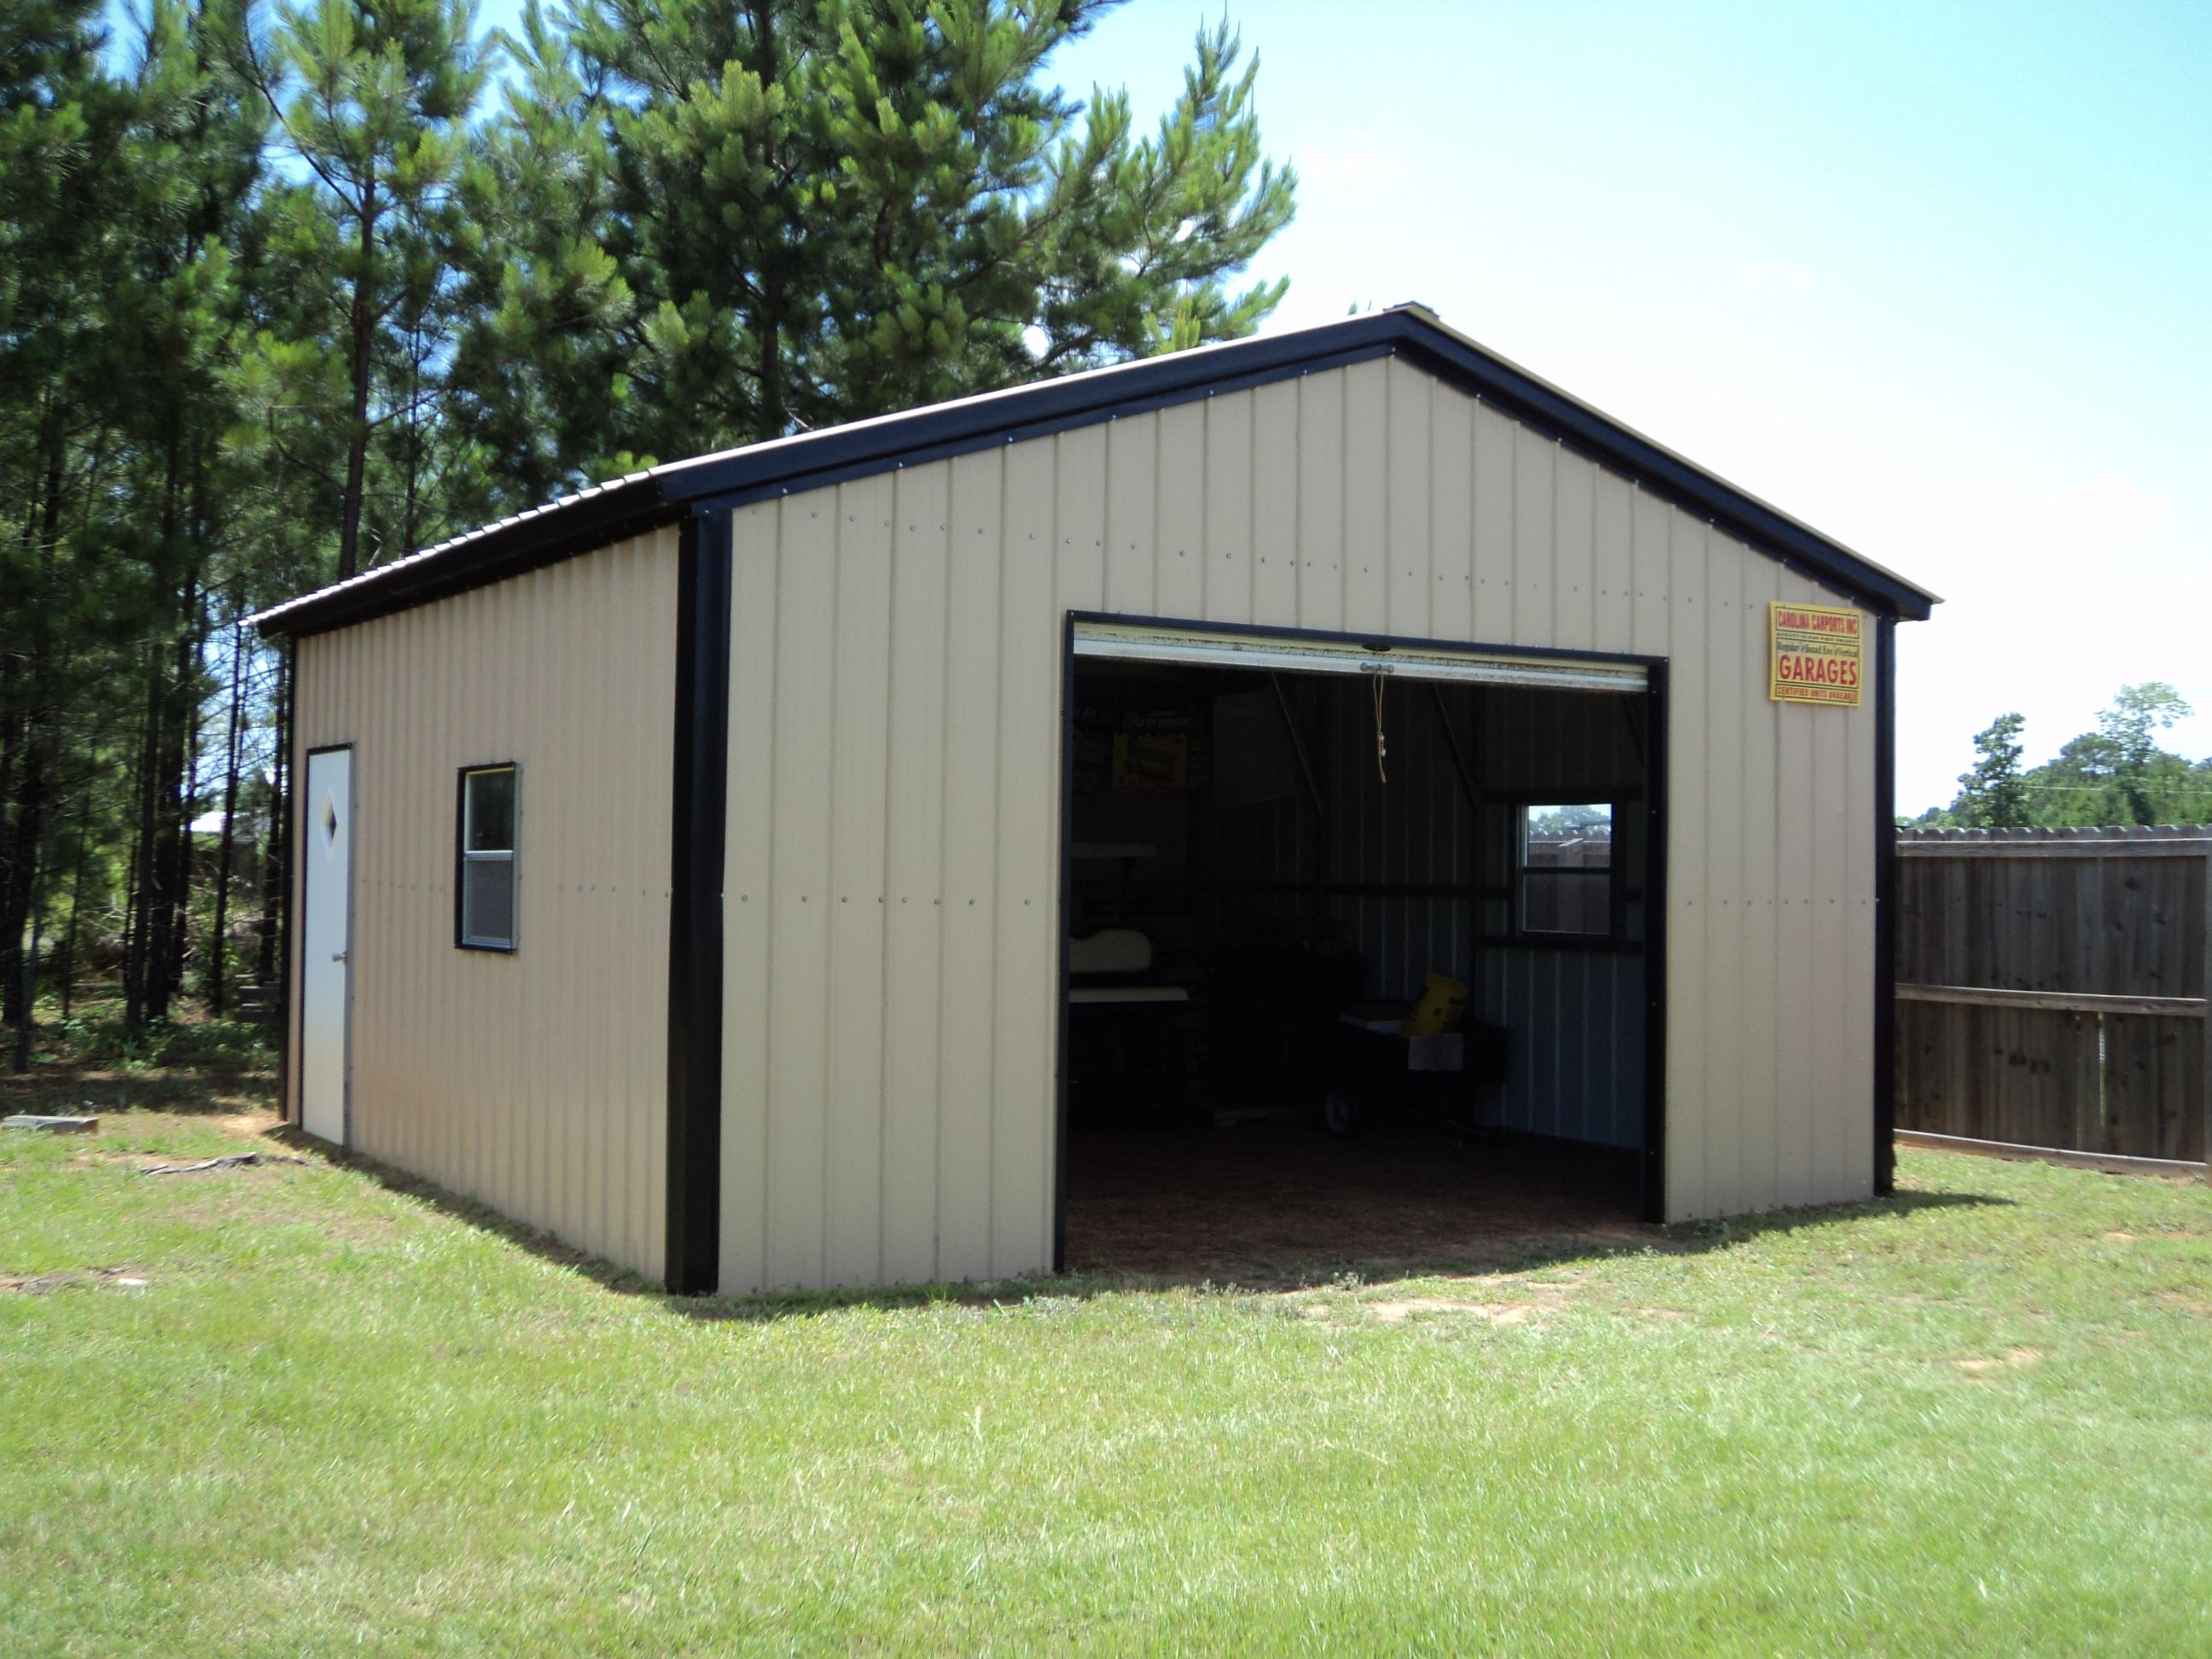 metal garages 18 x 21 x 9 all vertical garage BASSEVH